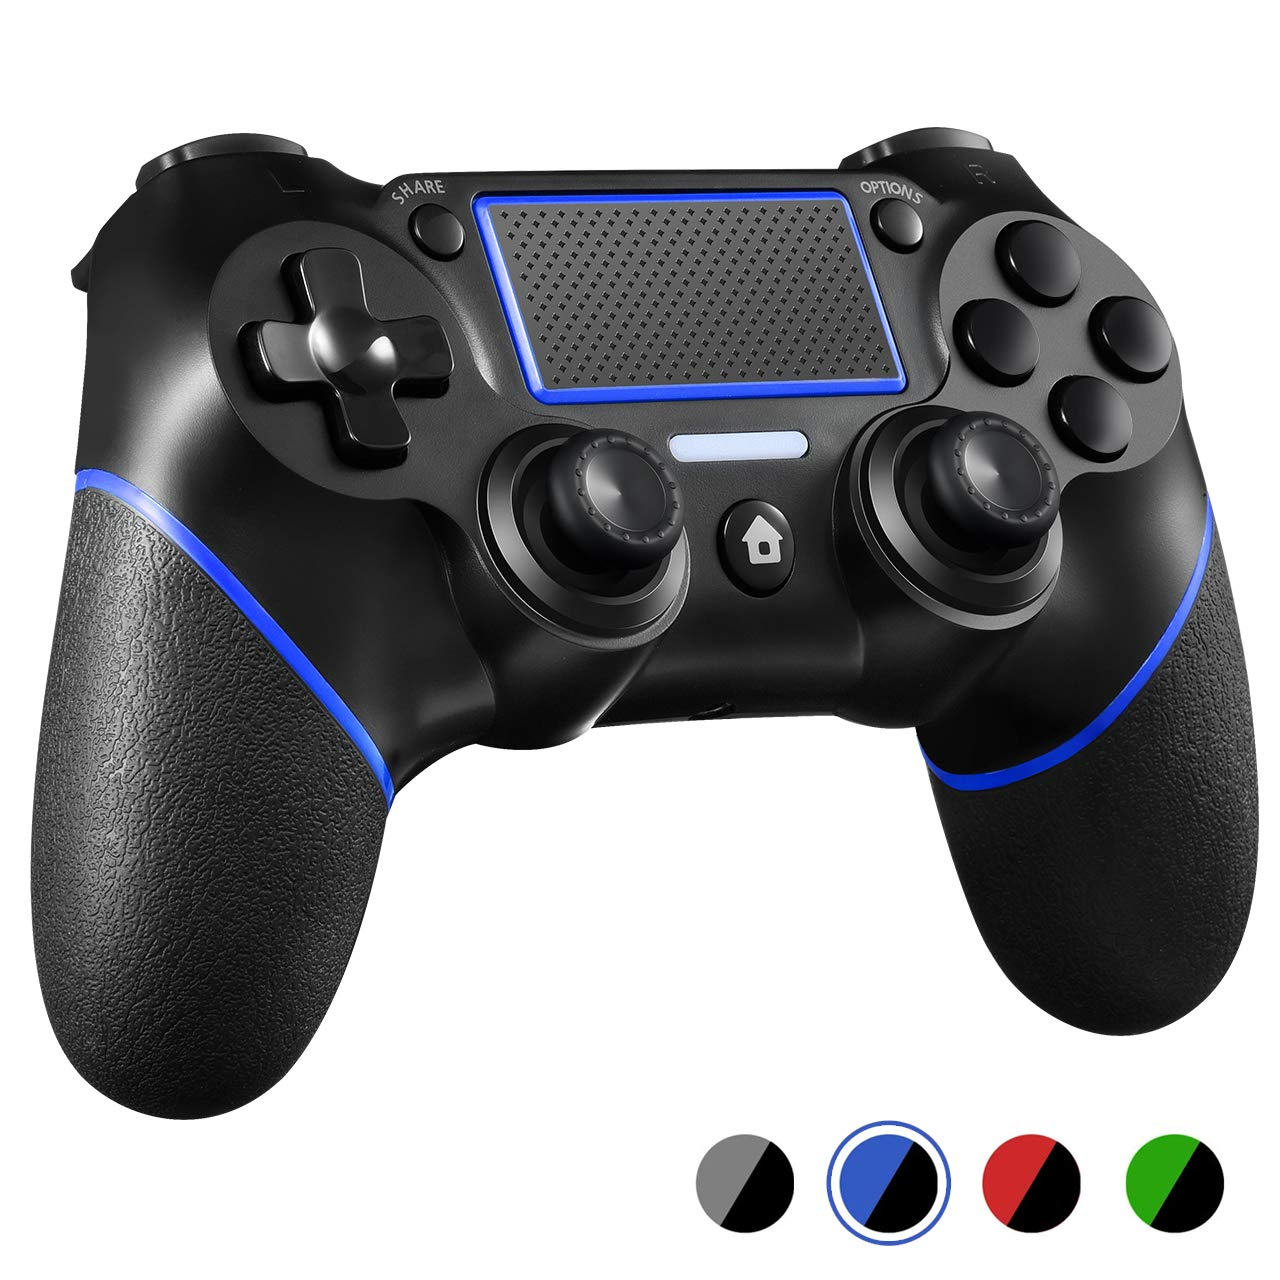 New Ps4 Controller Orda Wireless Gamepad